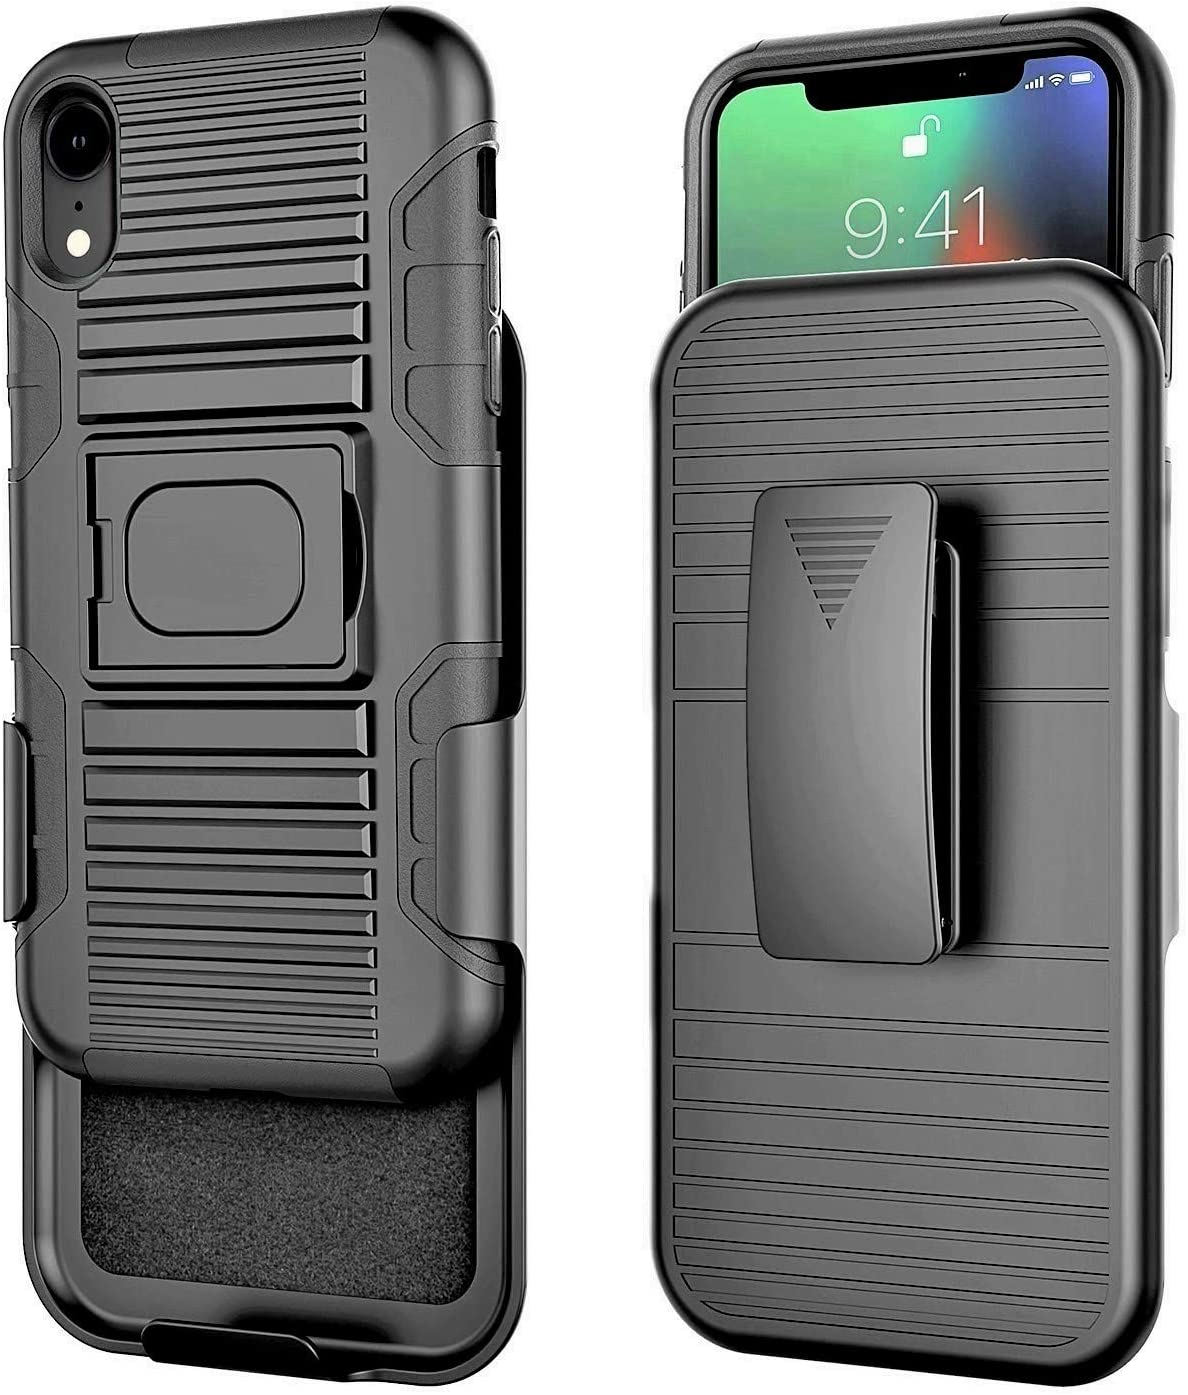 Stronden Holster Case for iPhone XR Belt Case - Holster Case Belt Clip (Rubberized Grip) Slim Fit Protective Cover with Kickstand, Combo Shell Holder for iPhone XR (Black)